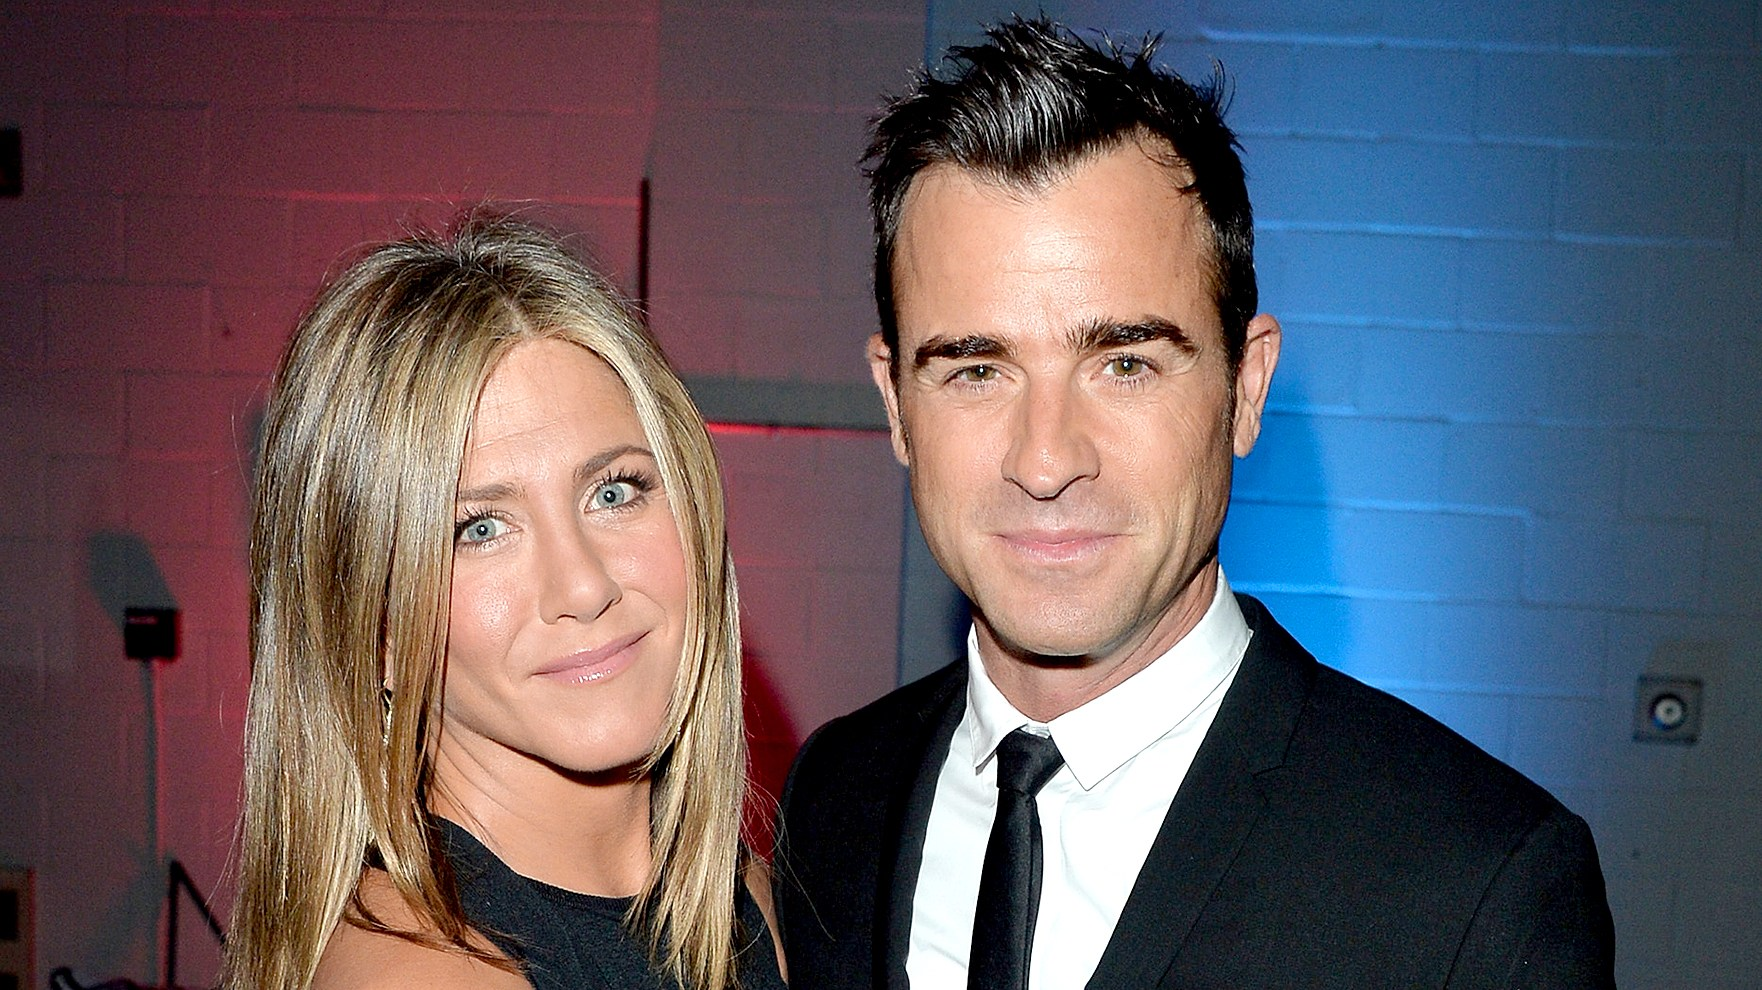 """Jennifer Aniston and Justin Theroux attend the """"Cake"""" premiere during the 2014 Toronto International Film Festival."""